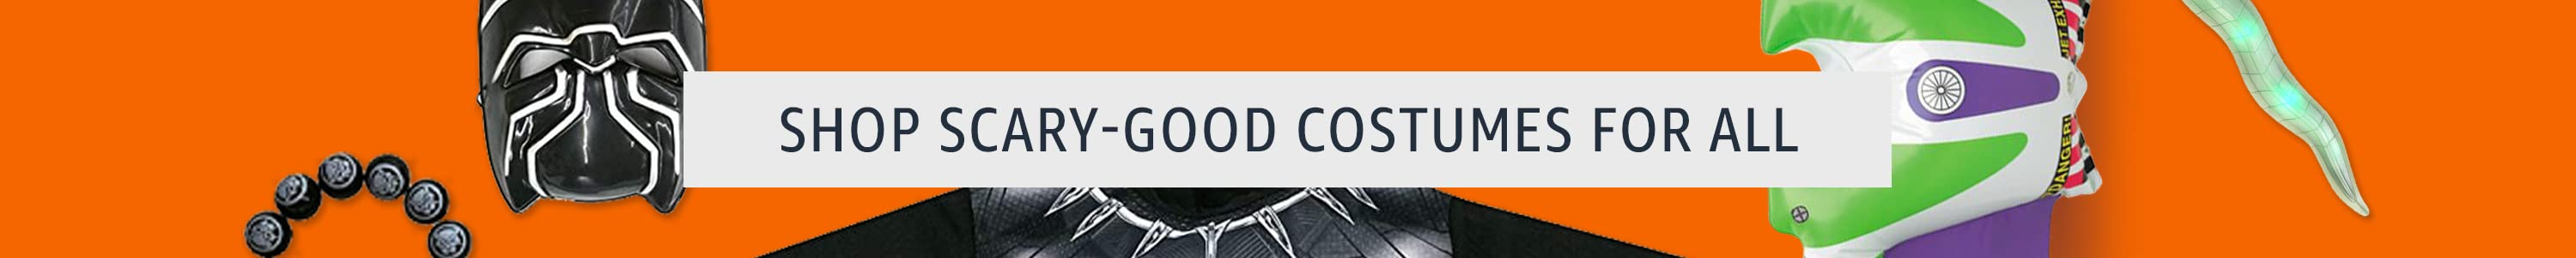 Shop scary-good costumes for all